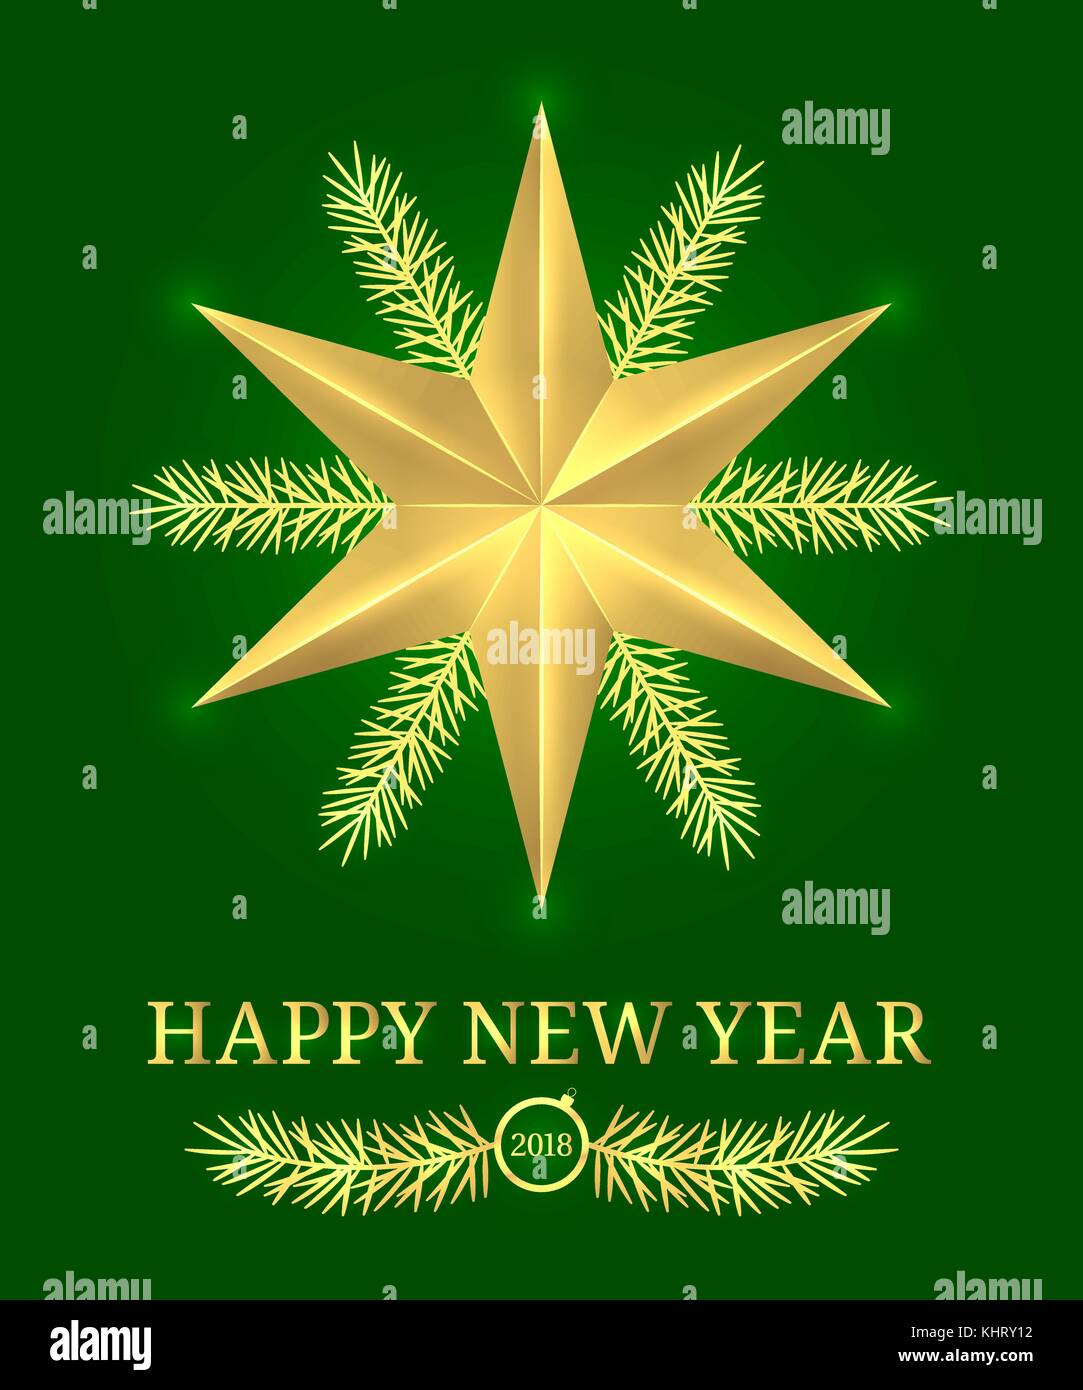 happy new year 2018 vector holiday banner with new year greeting in golden and green color golden shining star text and spruce branch